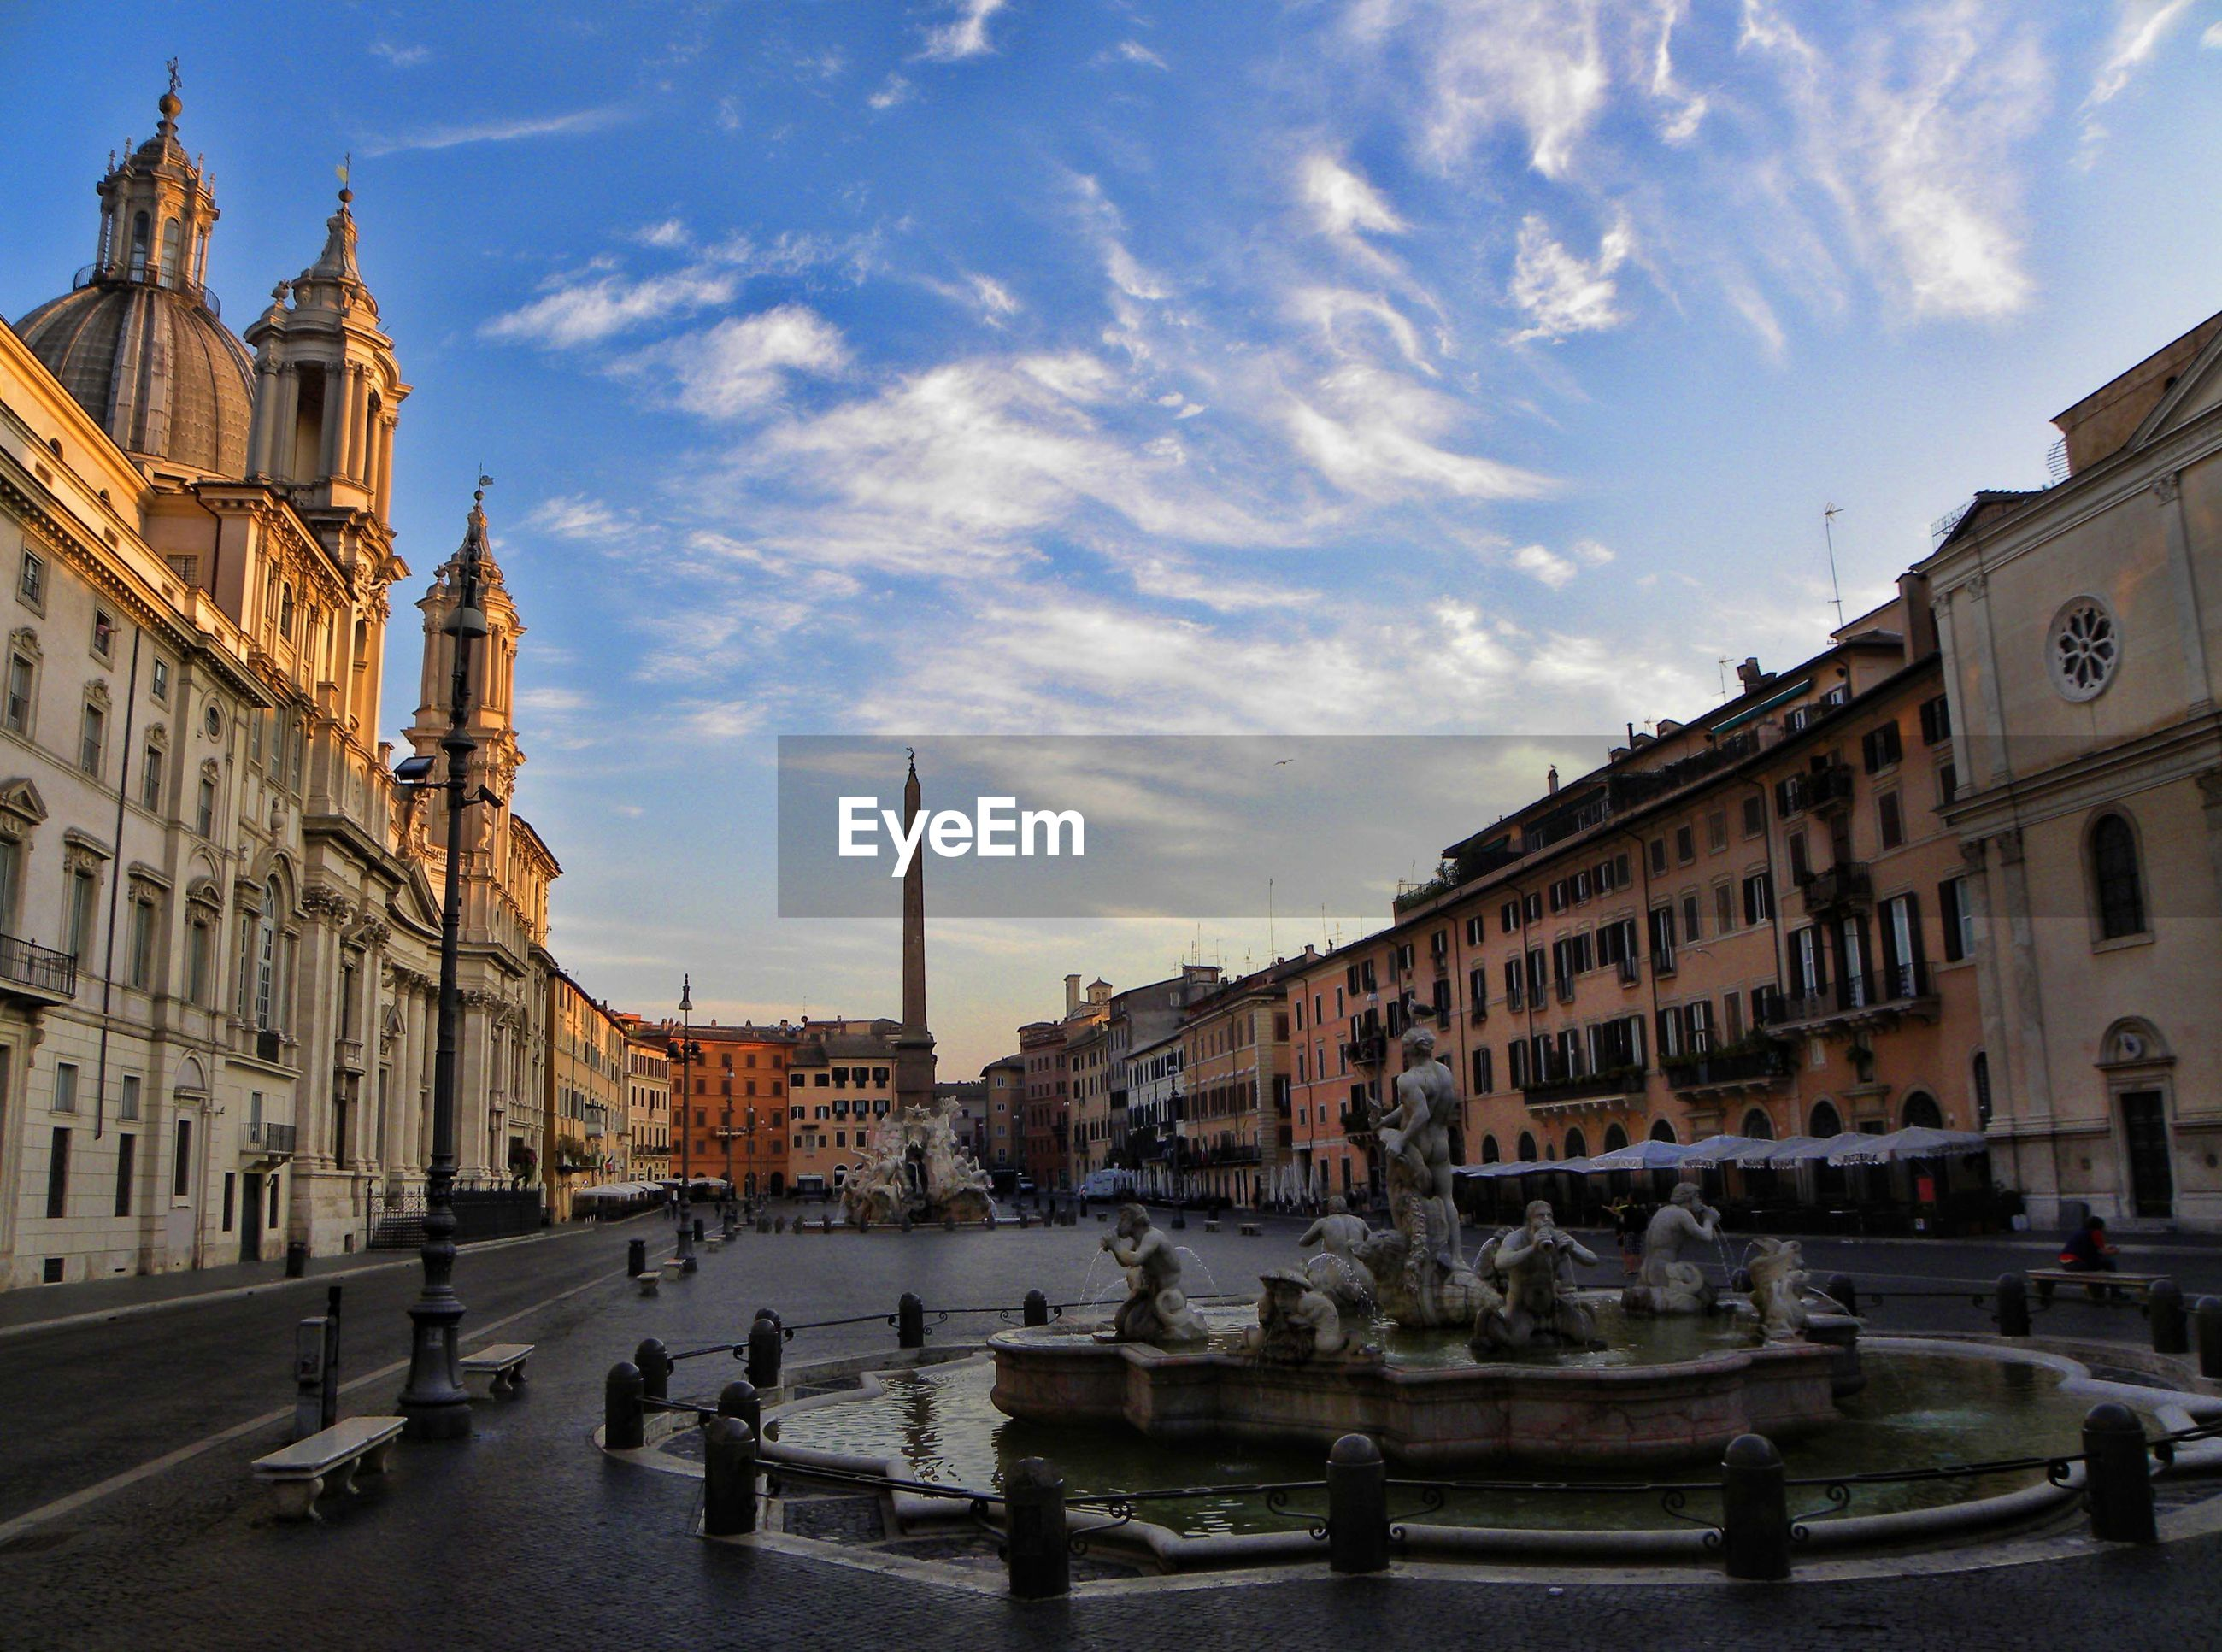 Sculptures in fountain amidst buildings against sky at piazza navona